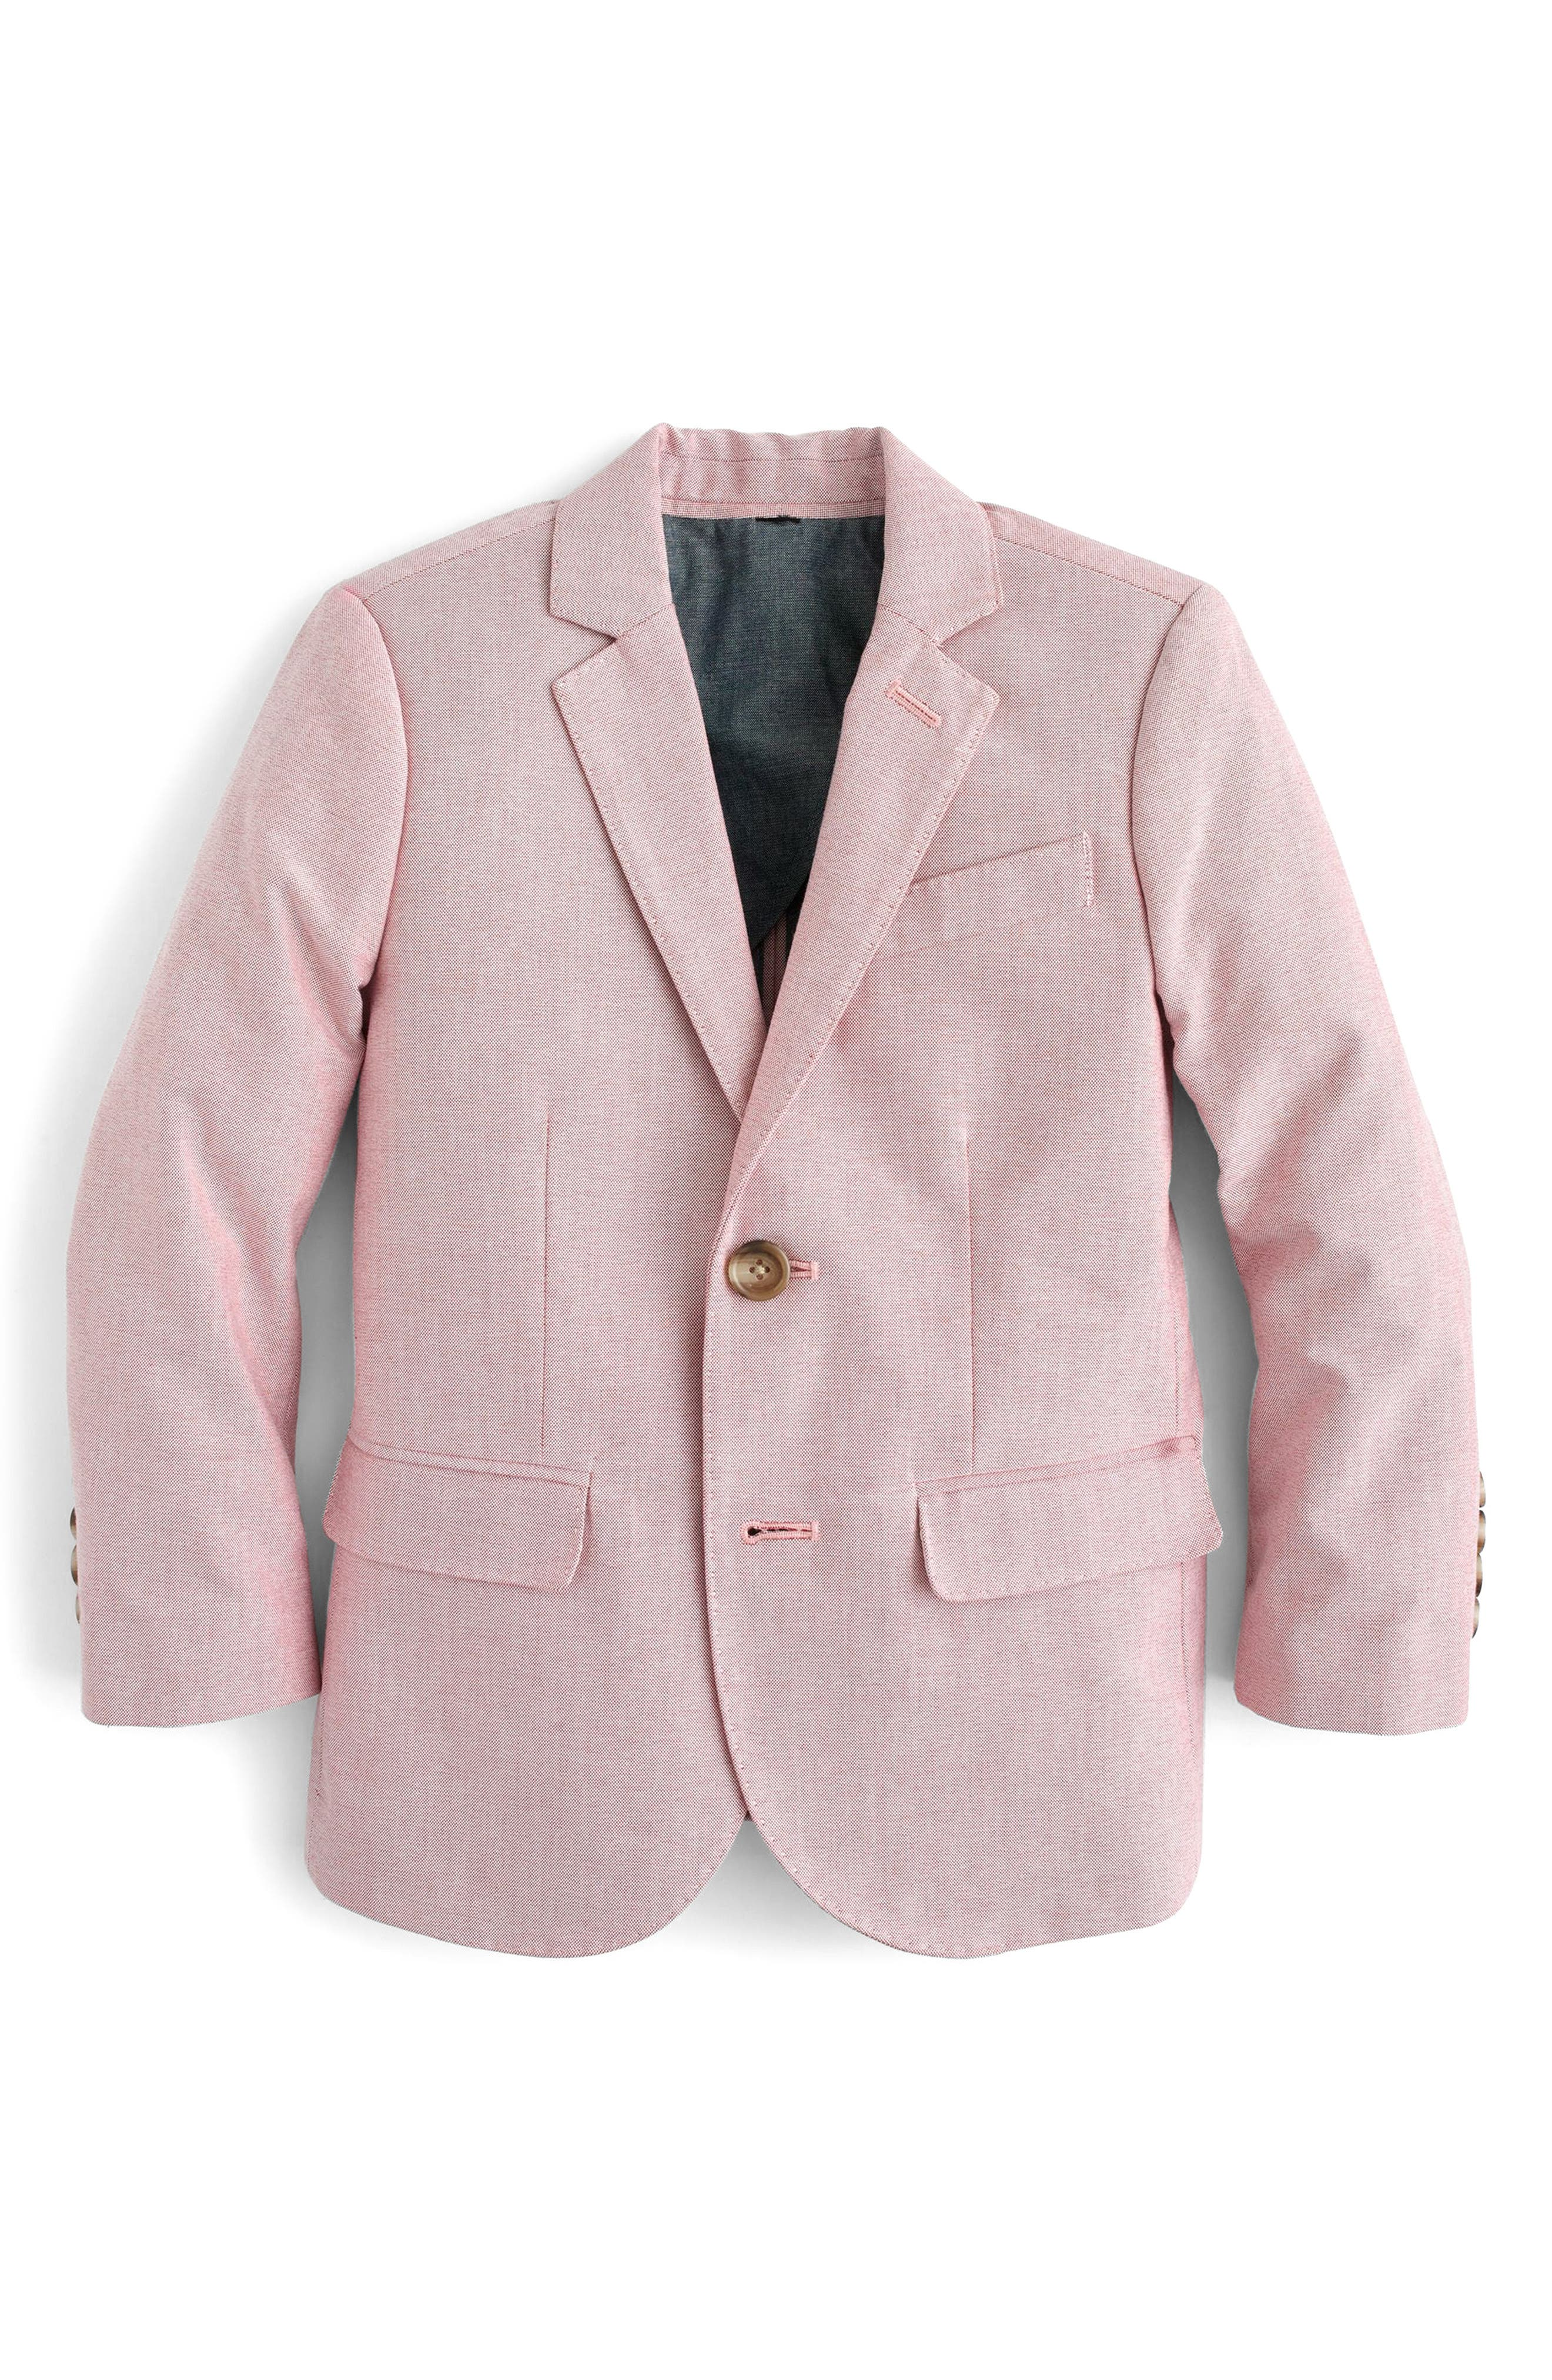 CREWCUTS BY J.CREW Ludlow Stretch Oxford Suit Jacket, Main, color, 600